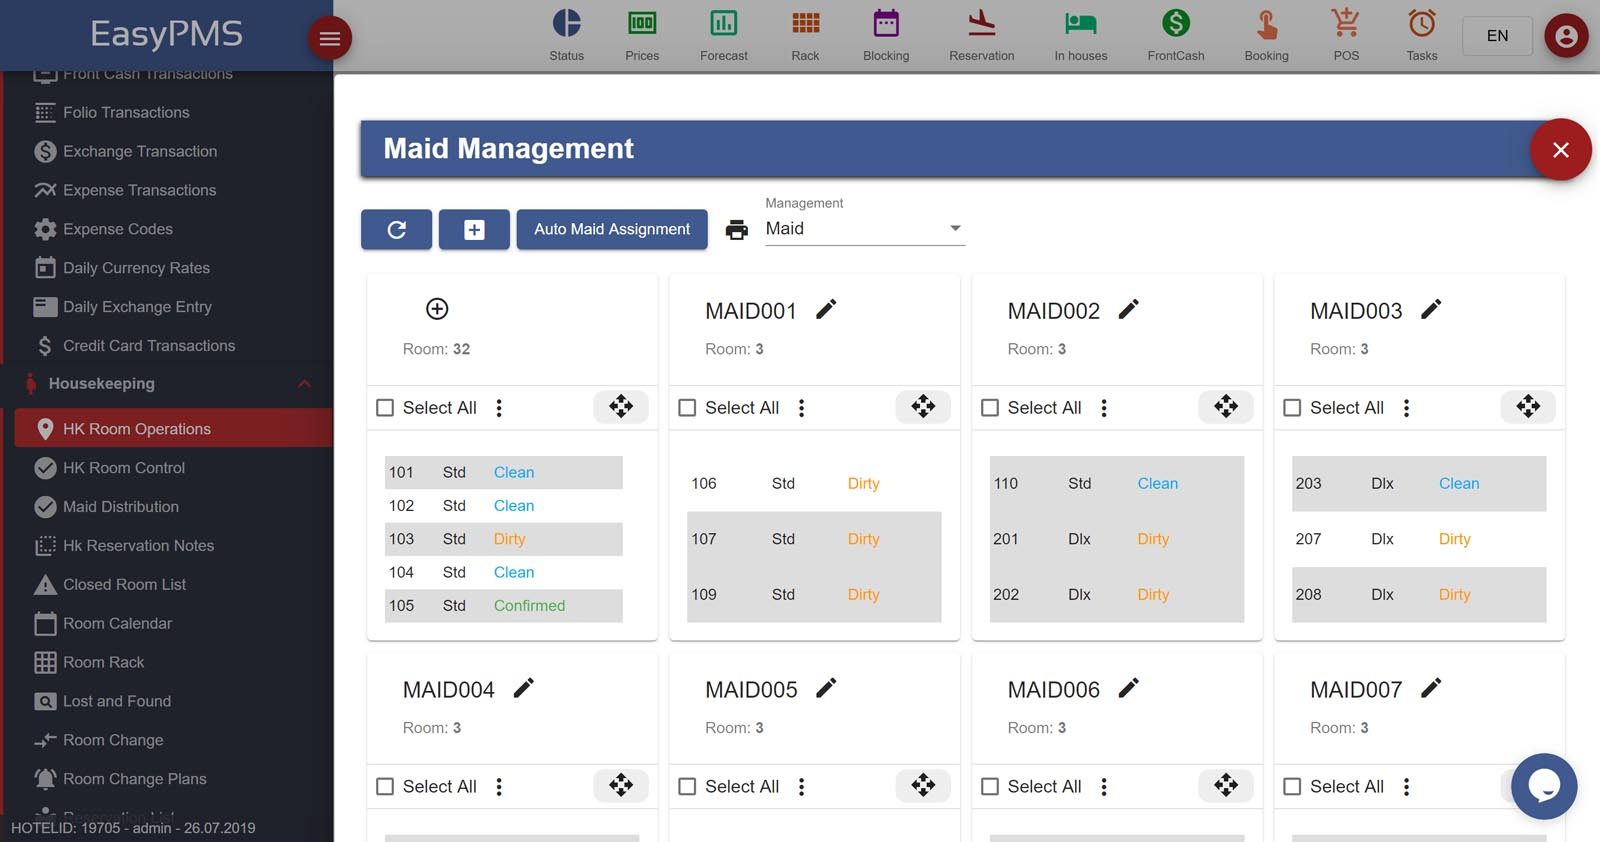 easypms hotel software housekeeping maid management